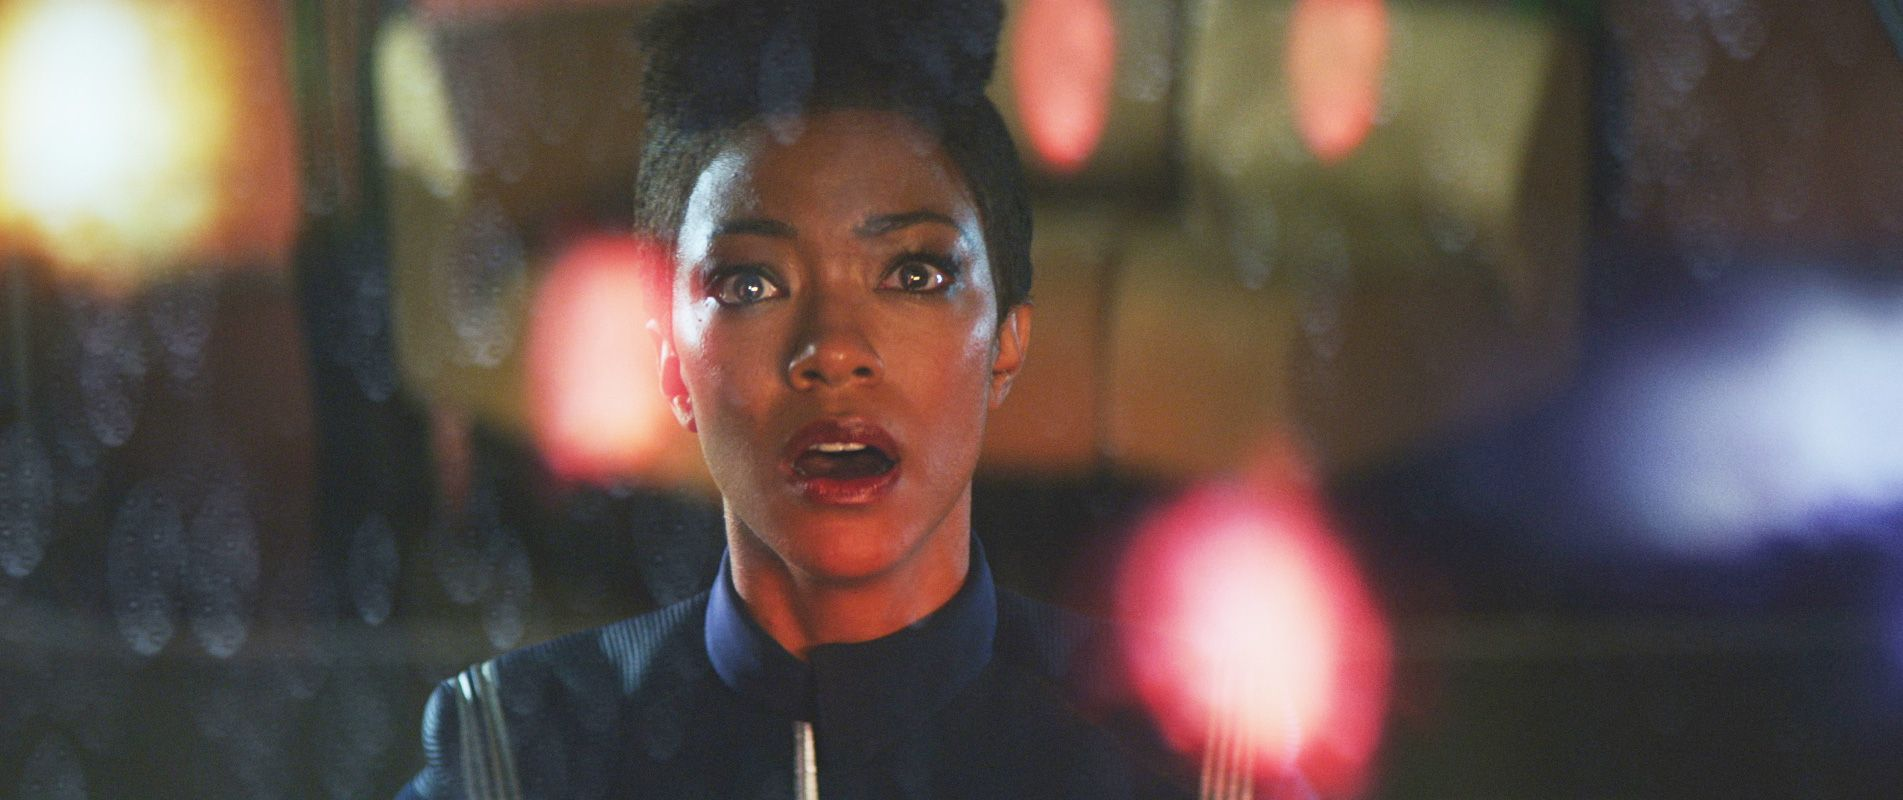 Star Trek: Discovery season 3 isn't airing for a while yet